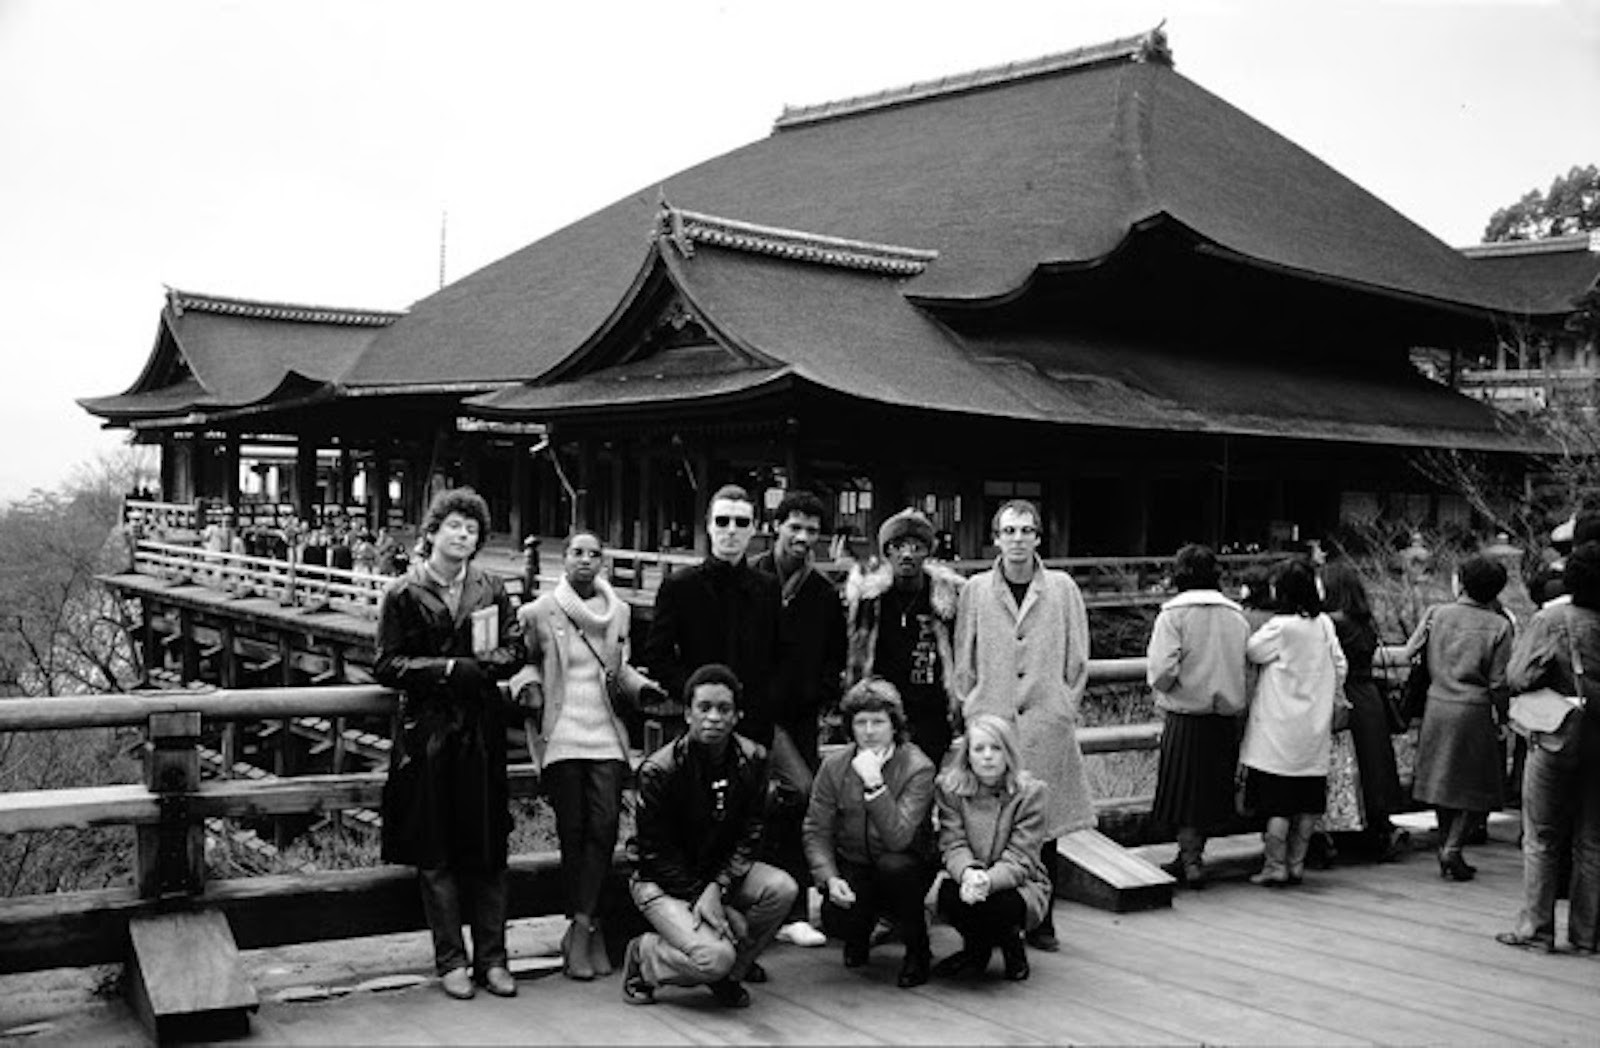 rock-stars-as-tourists-in-japan-1970s-80s-18.jpg